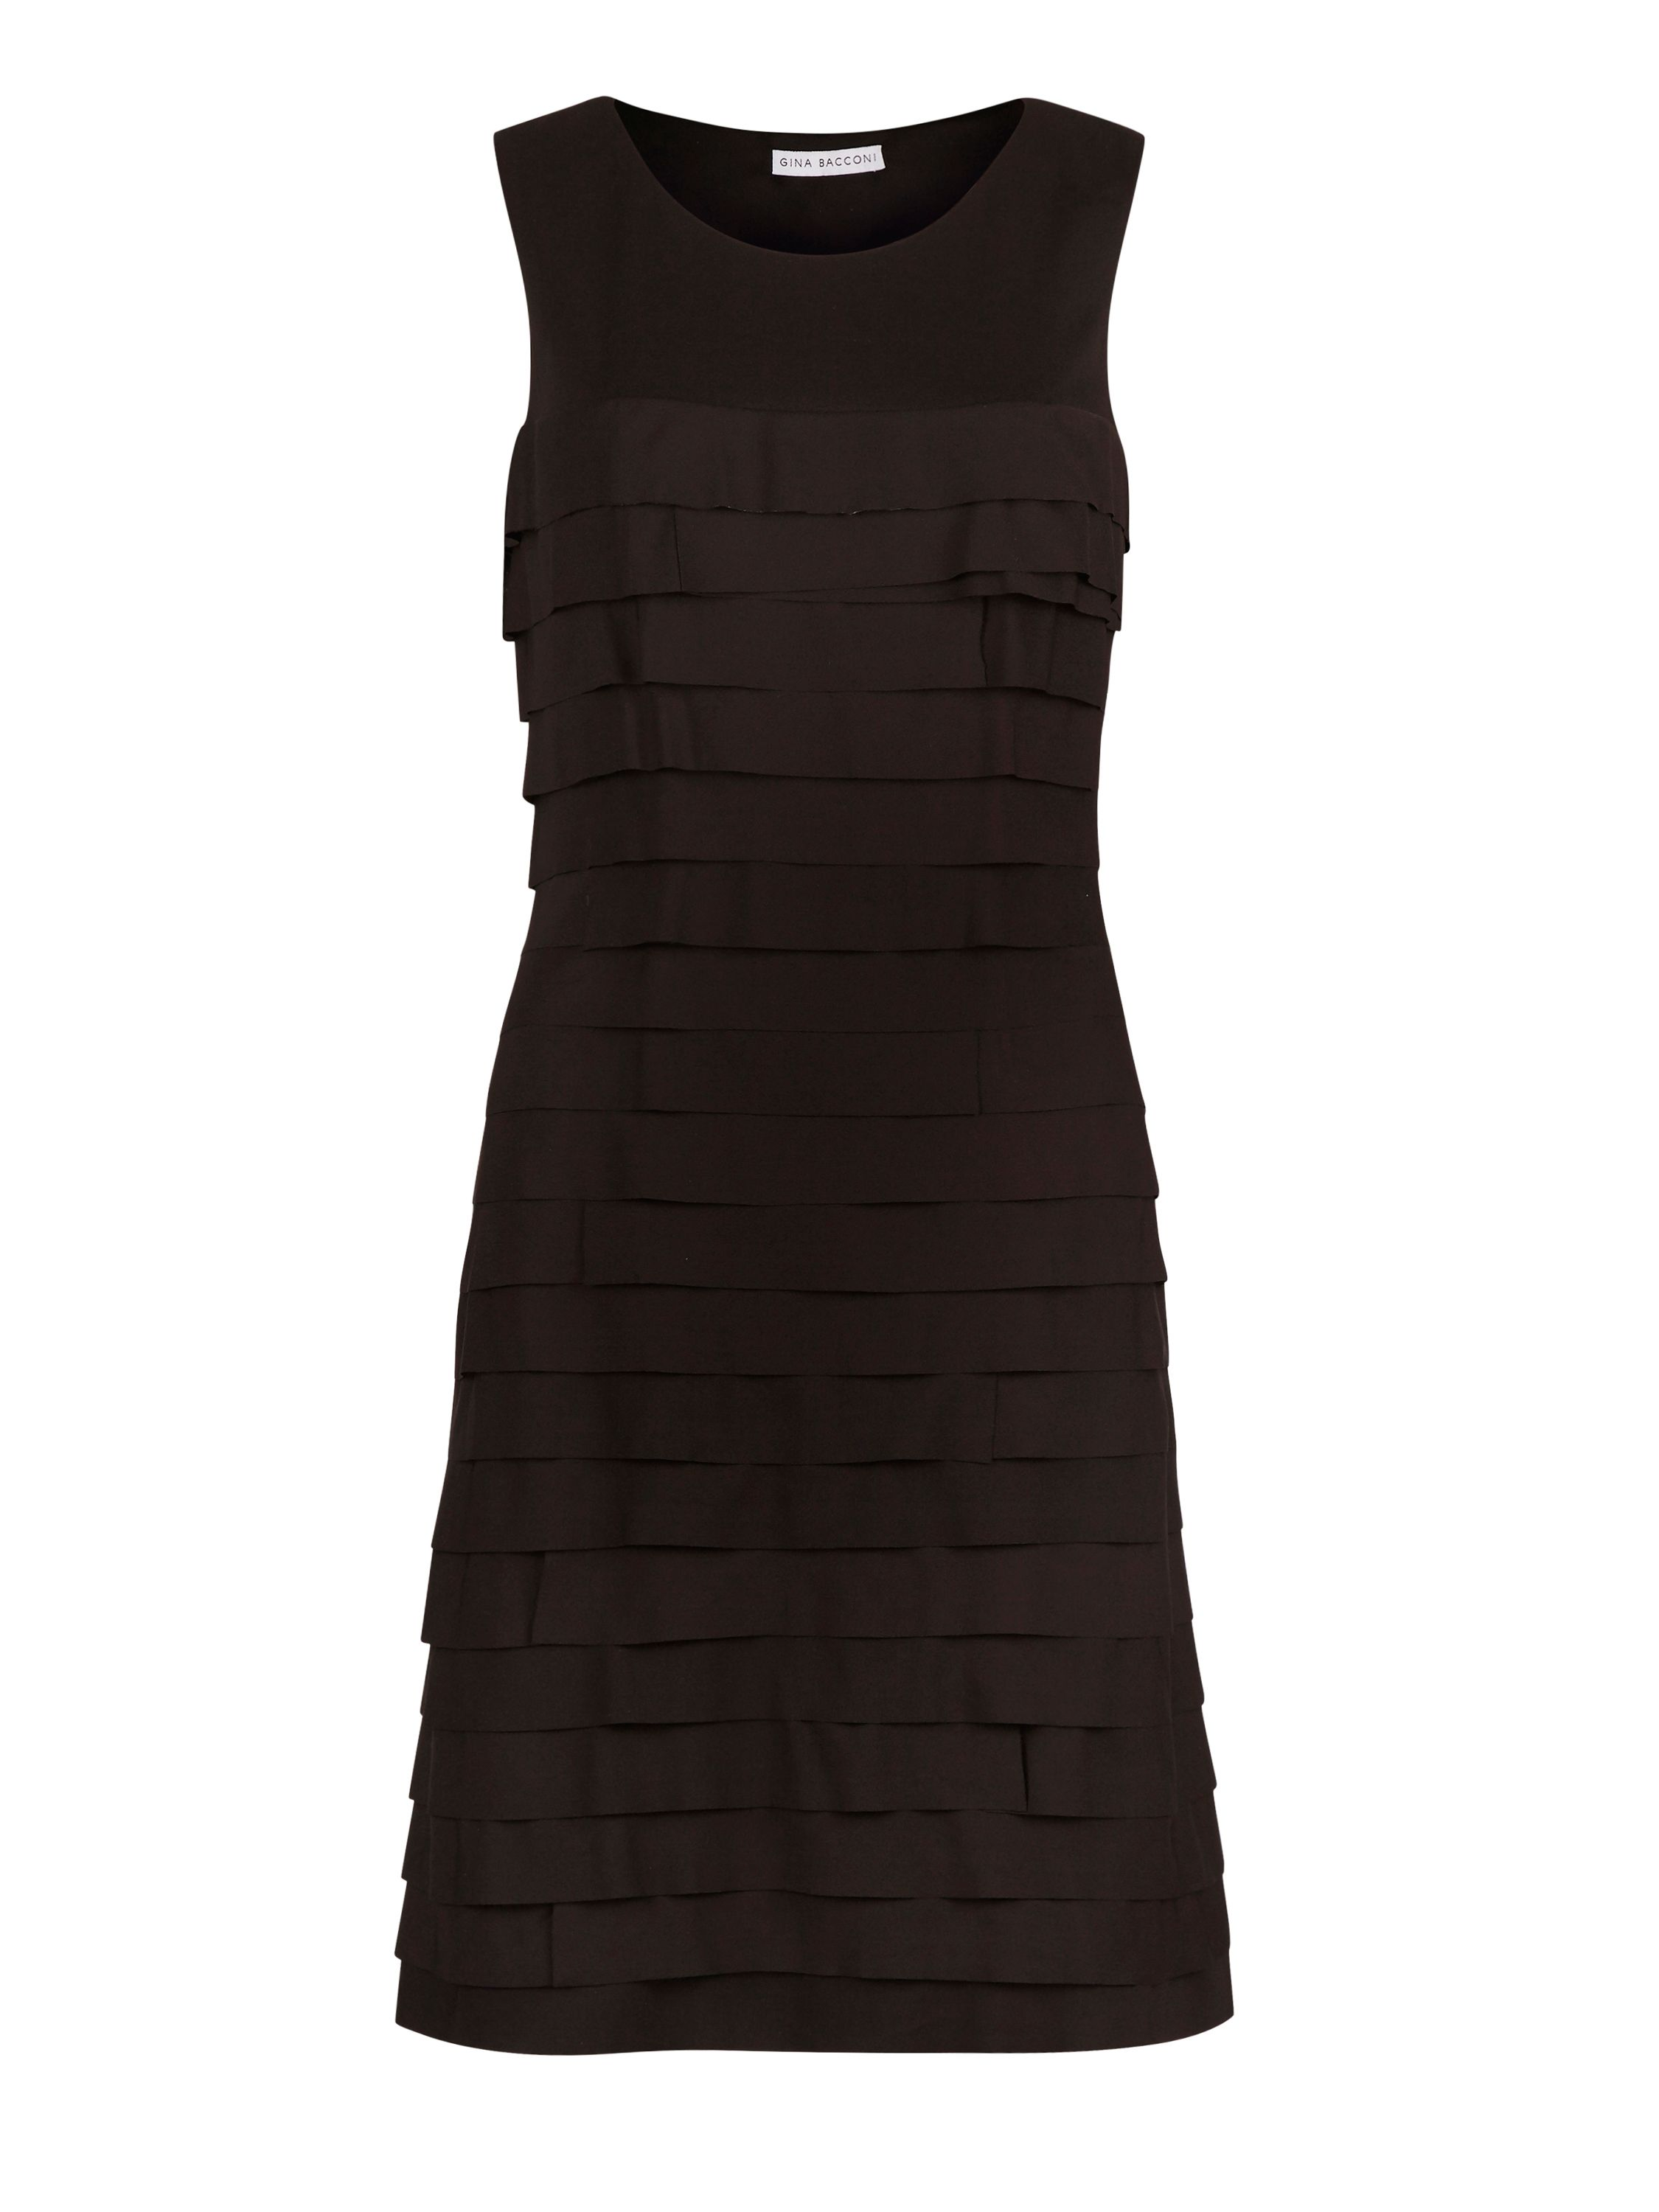 Gina Bacconi Crepe De Chine Layered Dress, Black